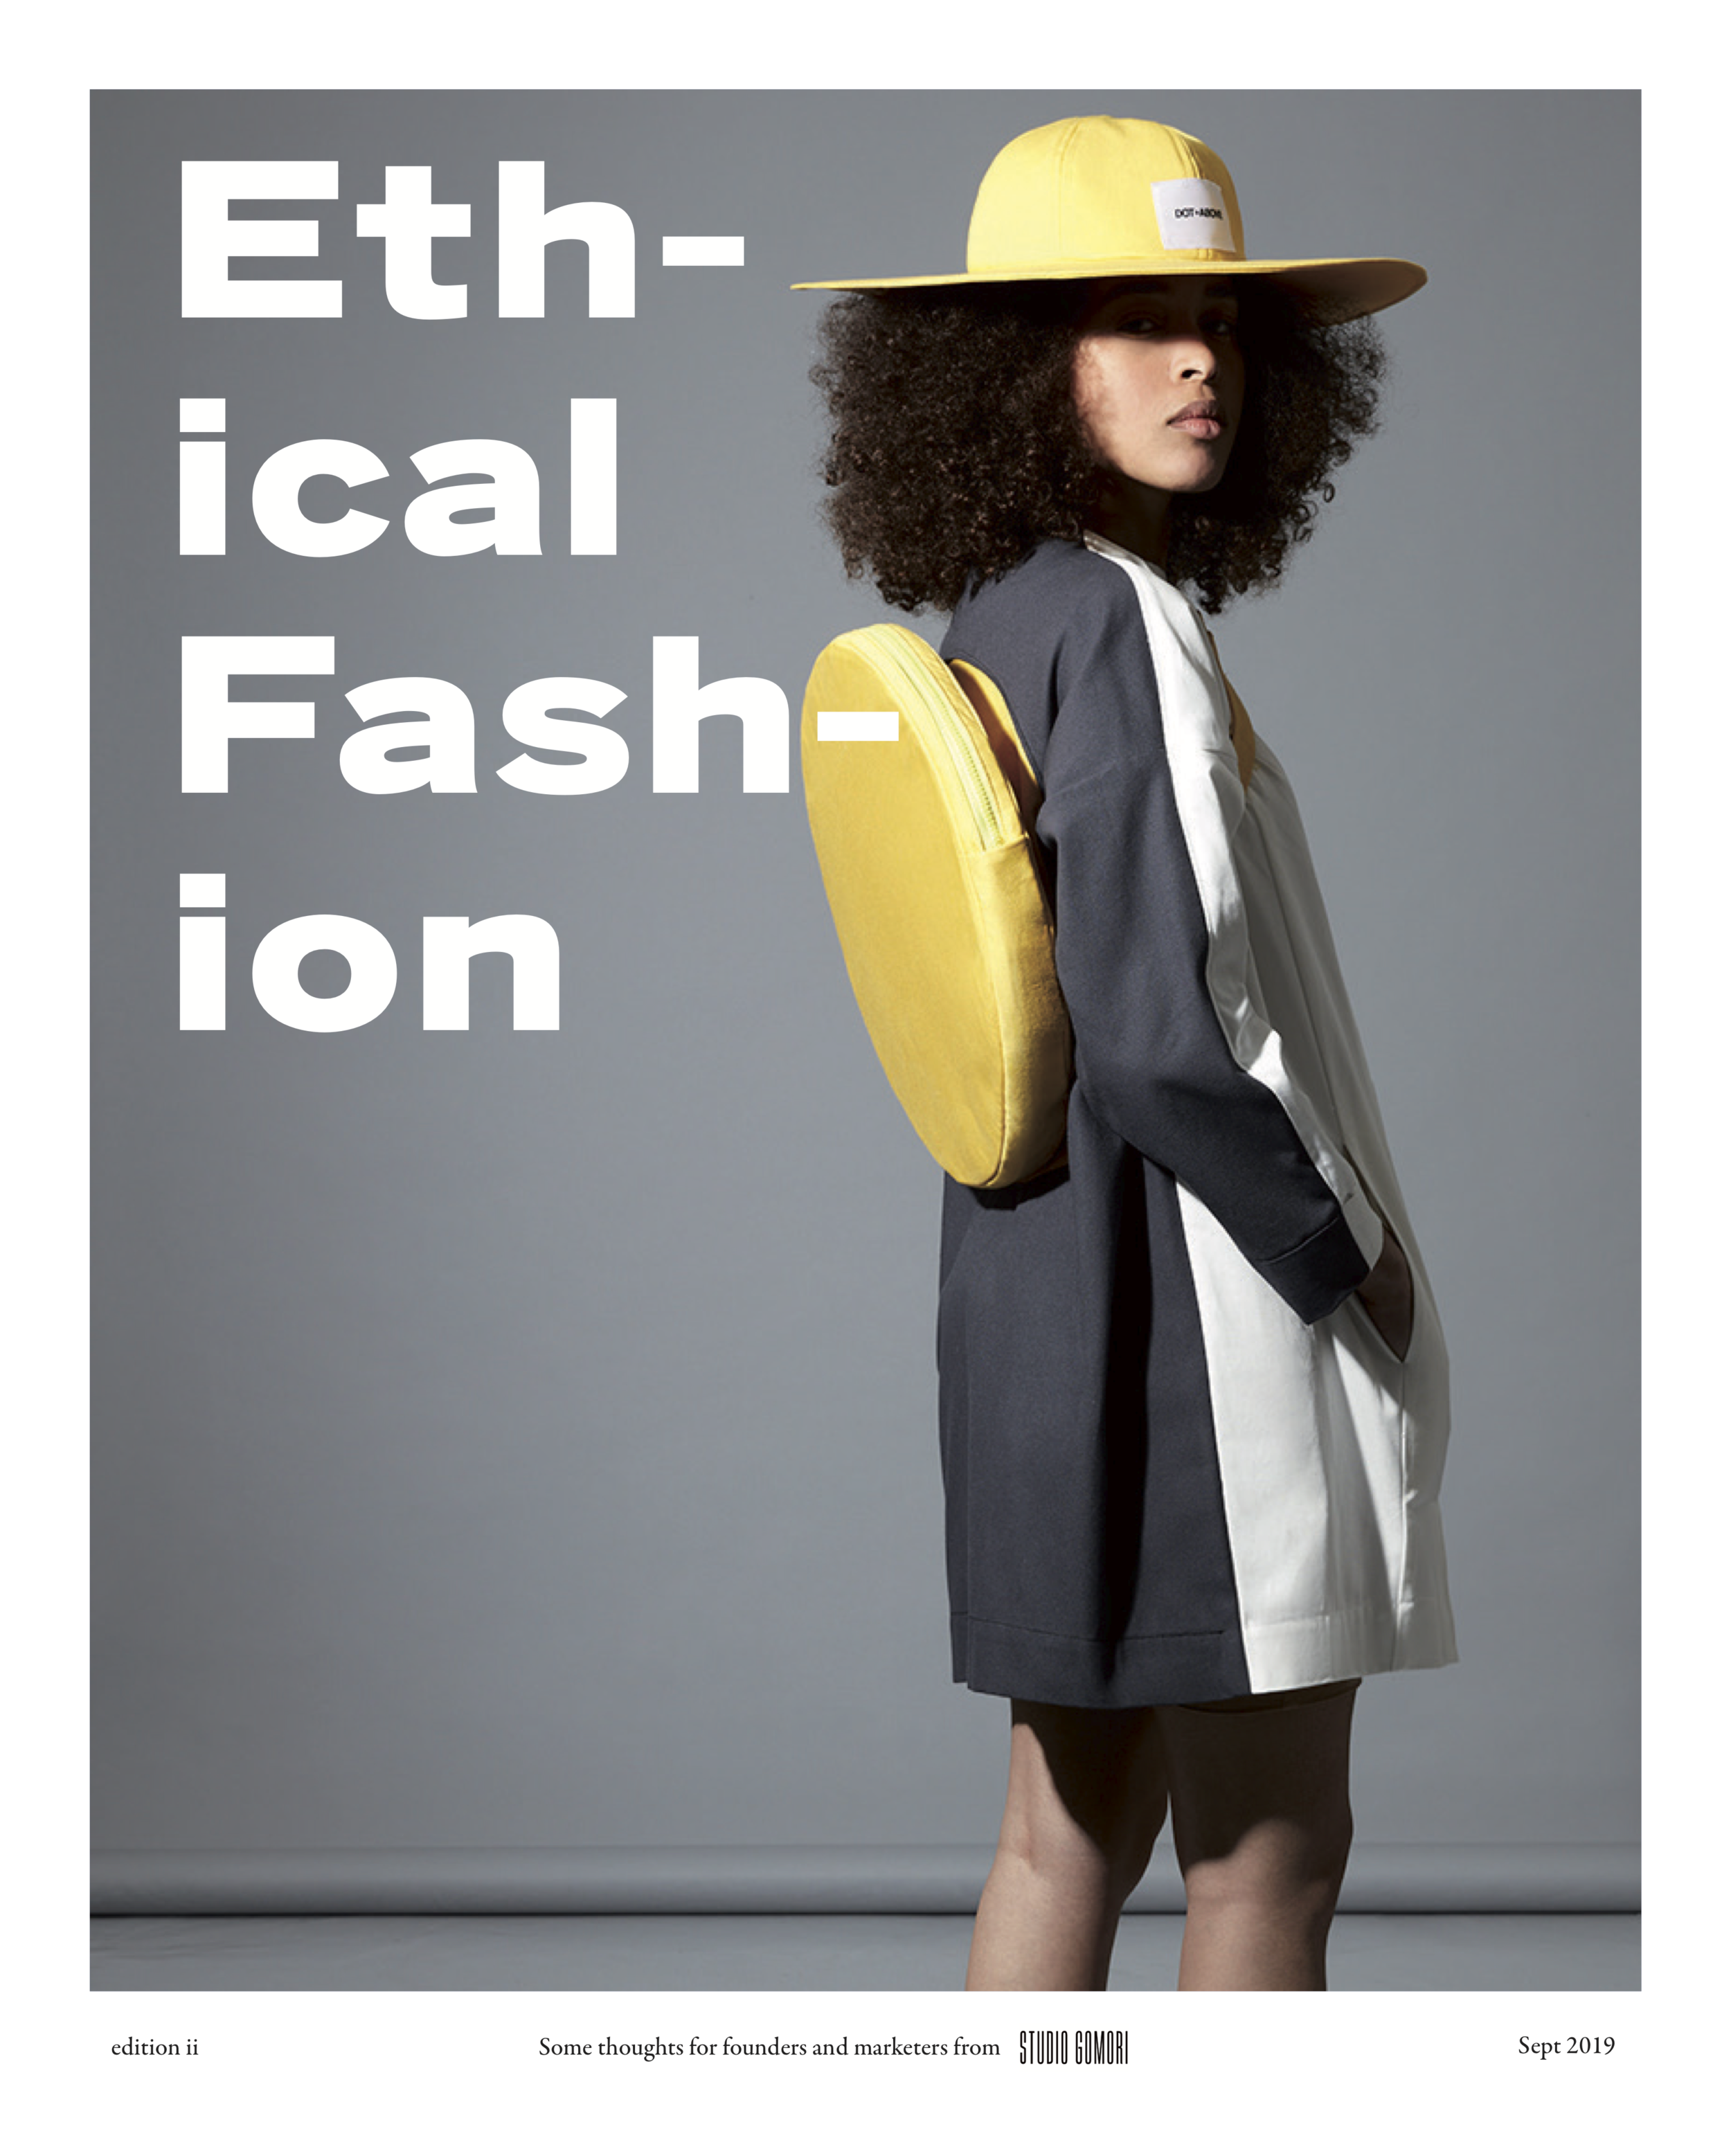 Ethical Fashion Branding Advice